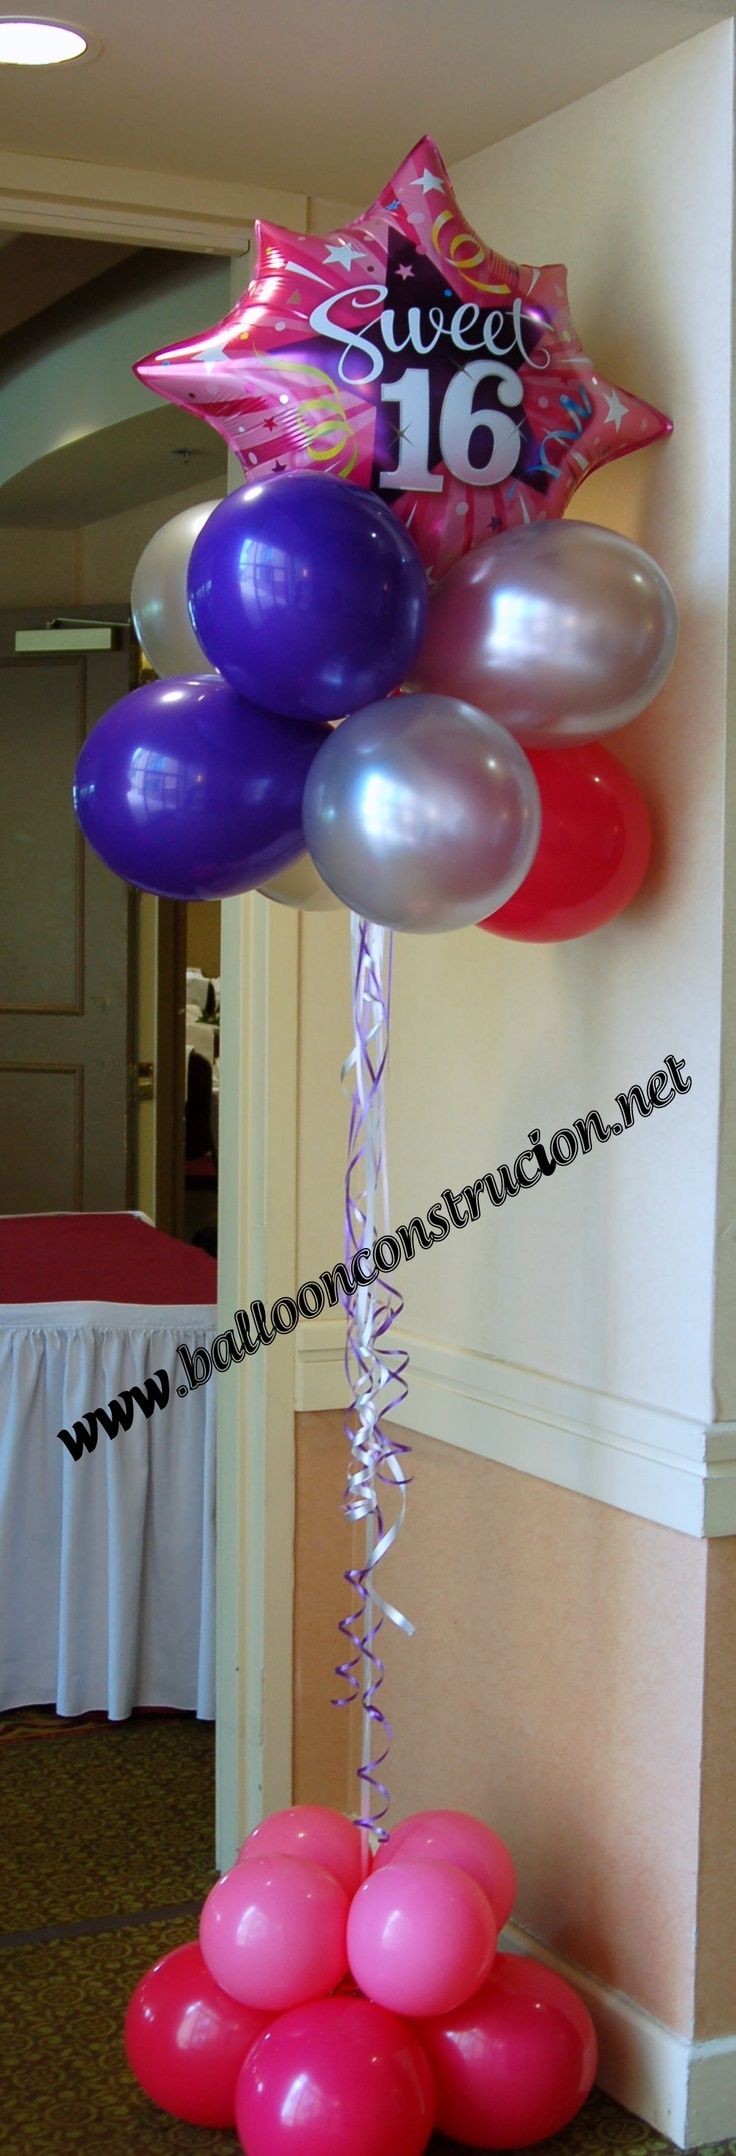 26 best images about sweet 16 balloon event decor on for Balloon decoration ideas for sweet 16